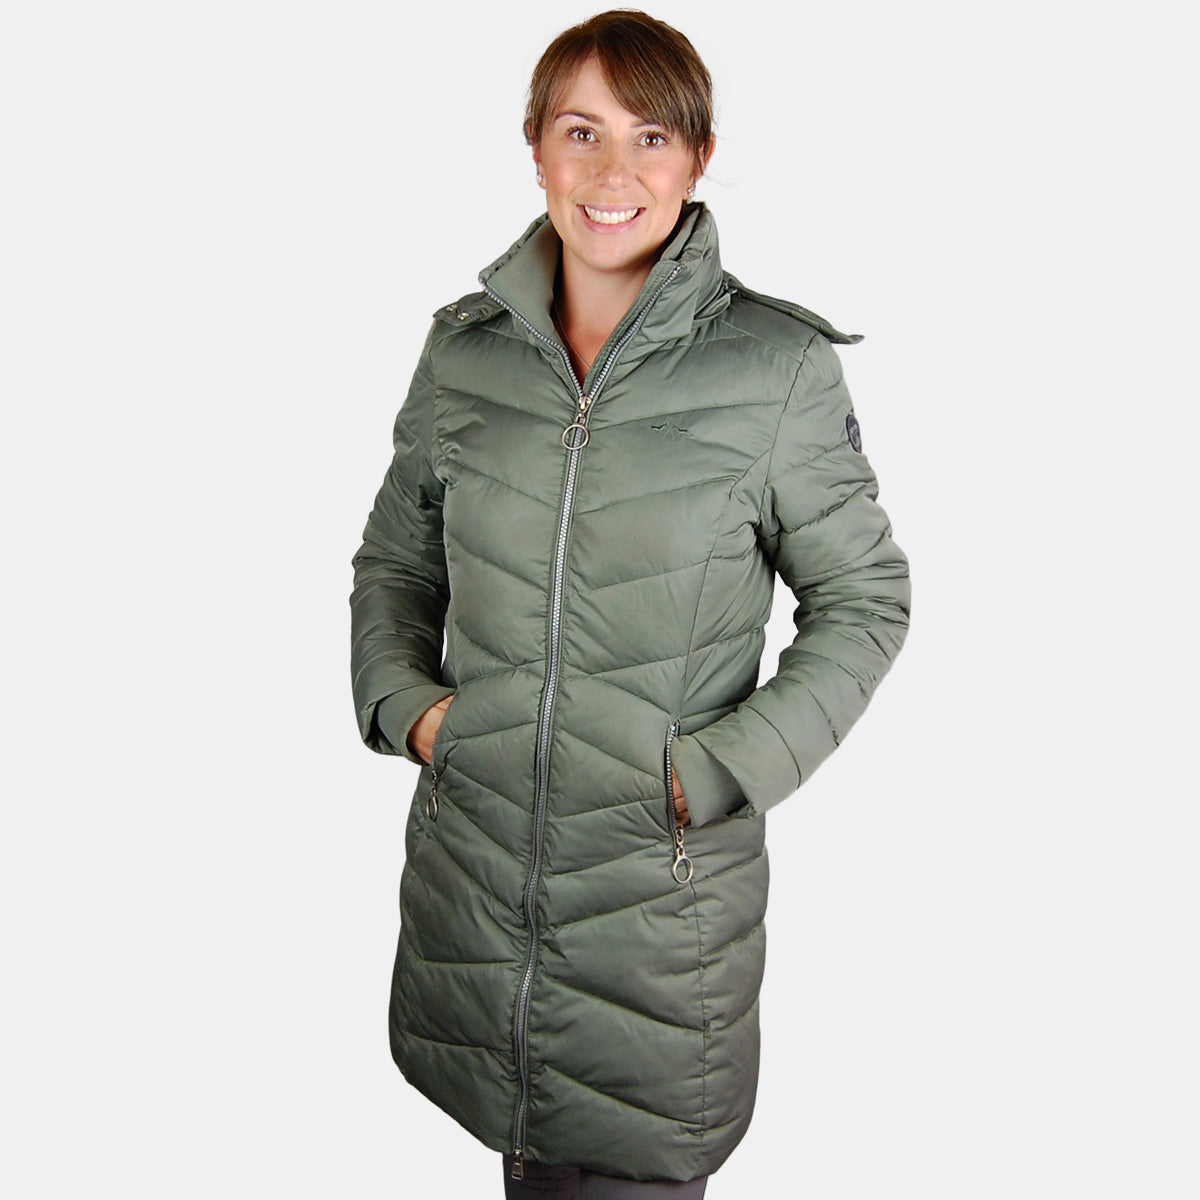 HV Polo Becky Long Jacket in Sage Green